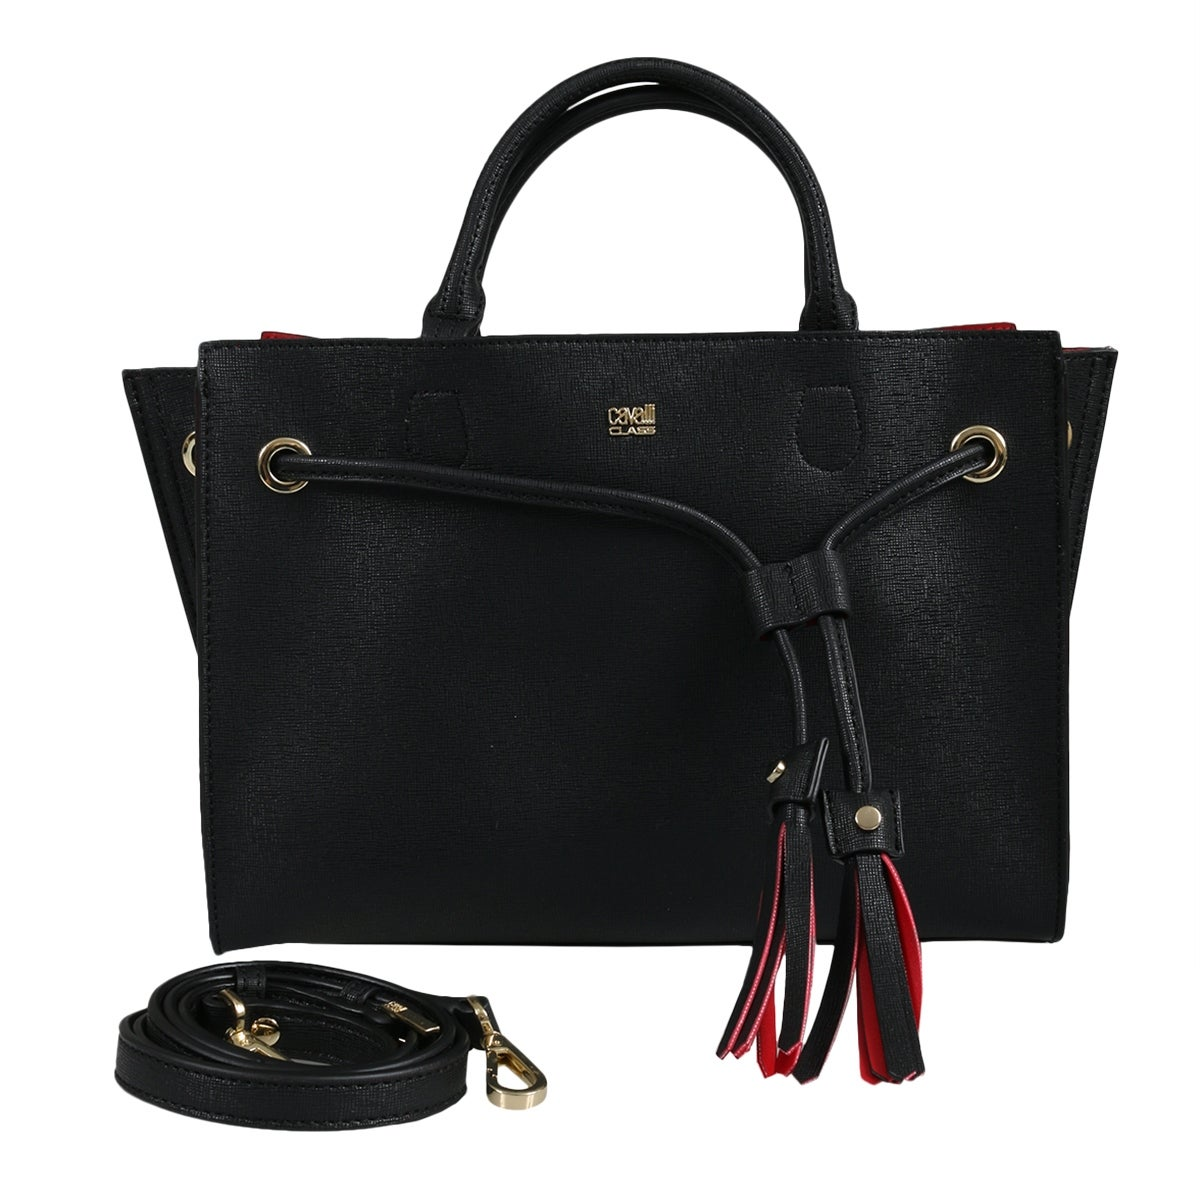 92ad9b2c8 Shop Roberto Cavalli HXLPGQ 999 Black Satchel Bag - 11.5-8-5.5 - Free  Shipping Today - Overstock - 25601682